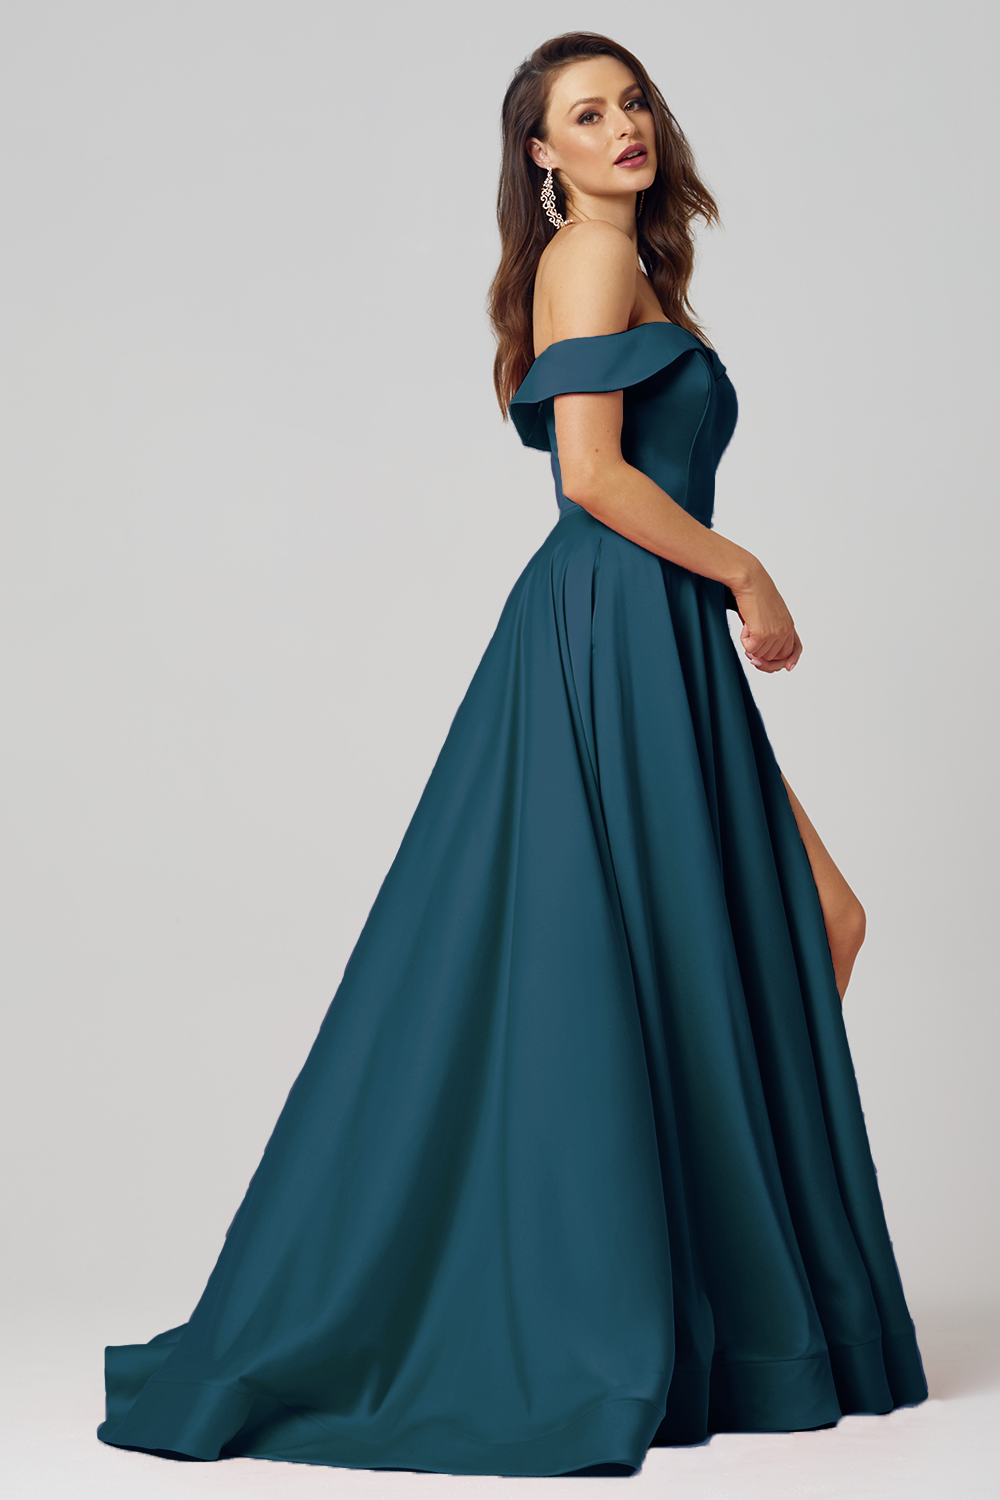 Pearl Strapless A-Line Formal Dress - PO876 TEAL